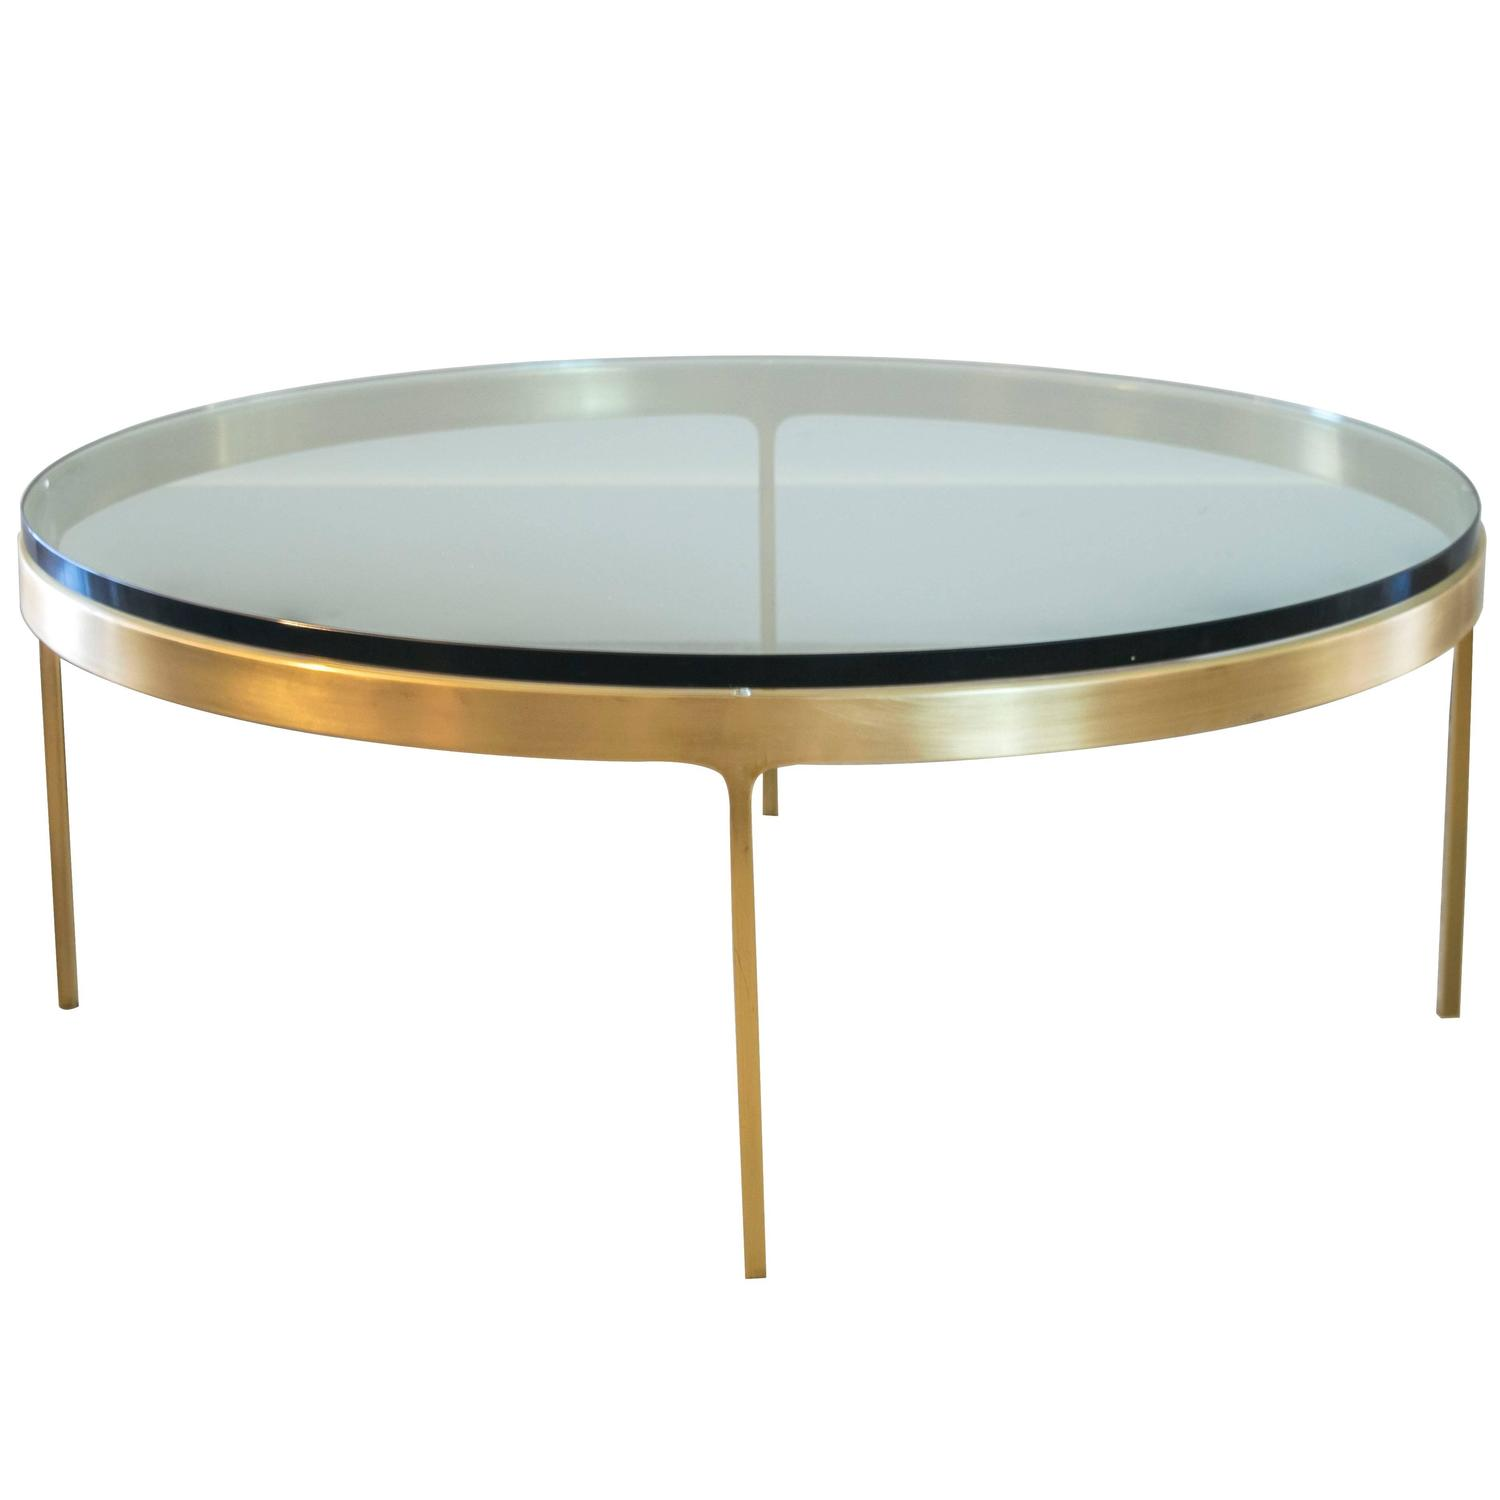 Solid brass round coffee table by nicos zographos at 1stdibs Brass round coffee table